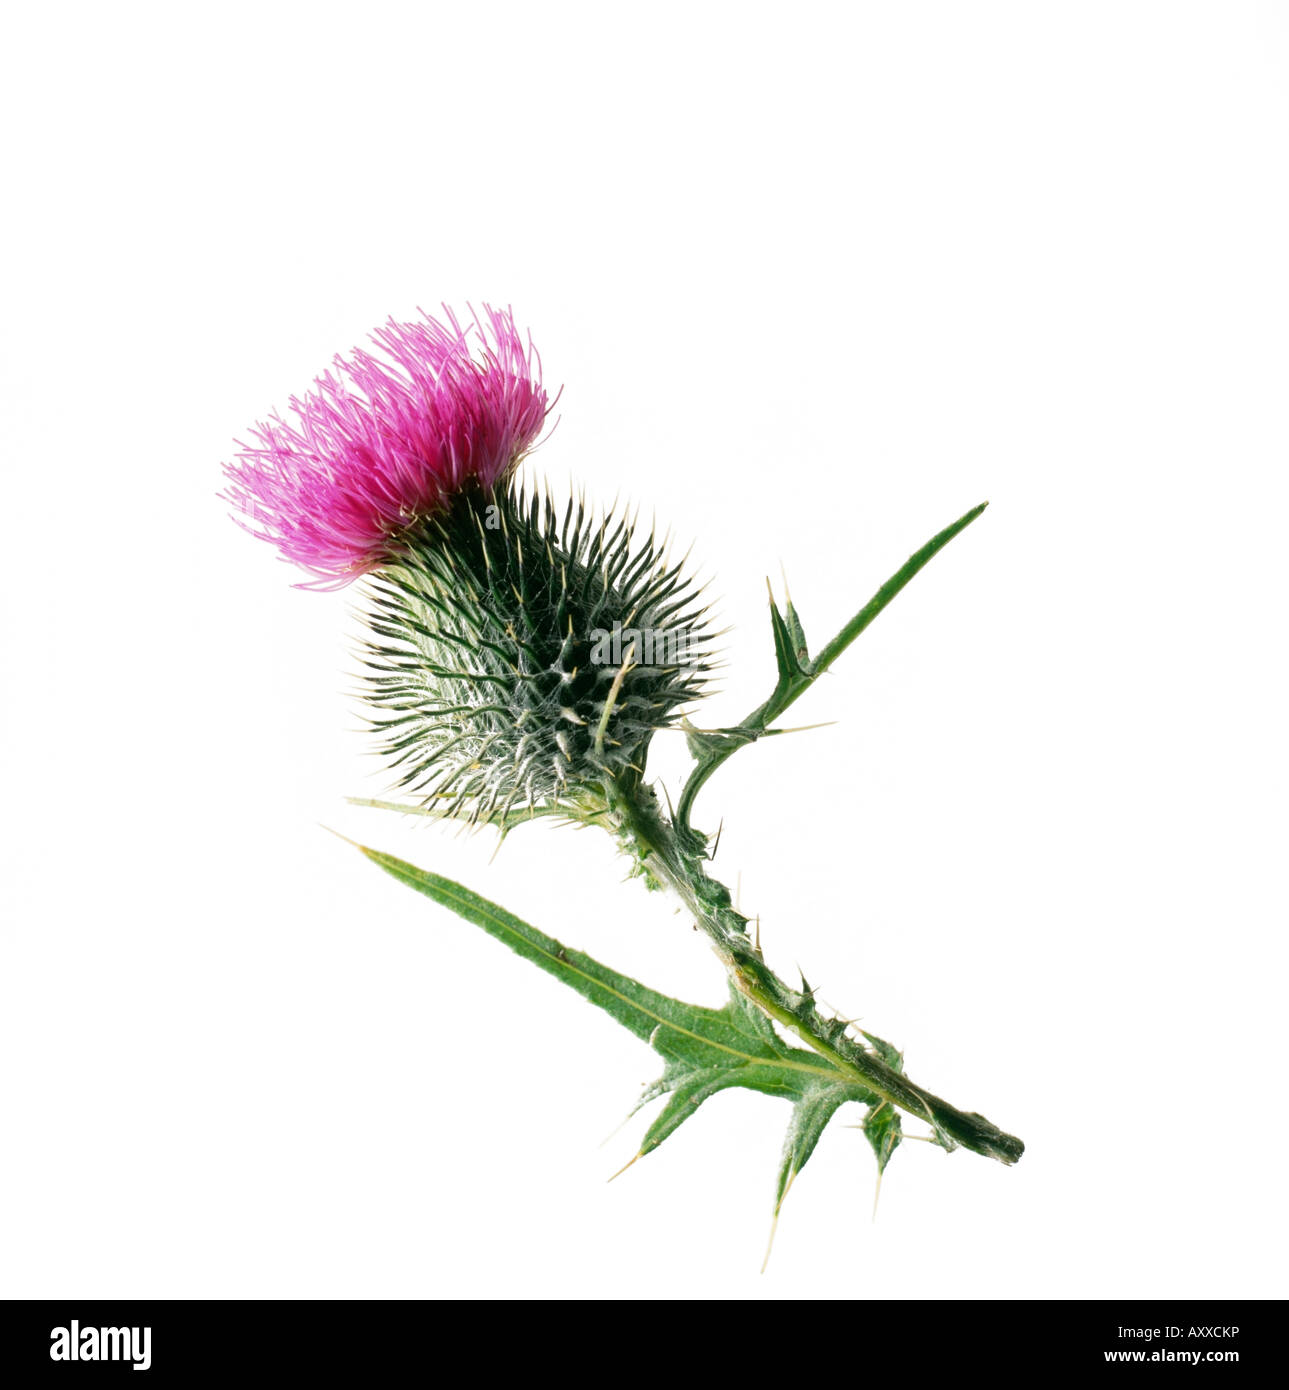 Cirsium vulgare, Scotch thistle, Purple flower on a stem against a white background. - Stock Image